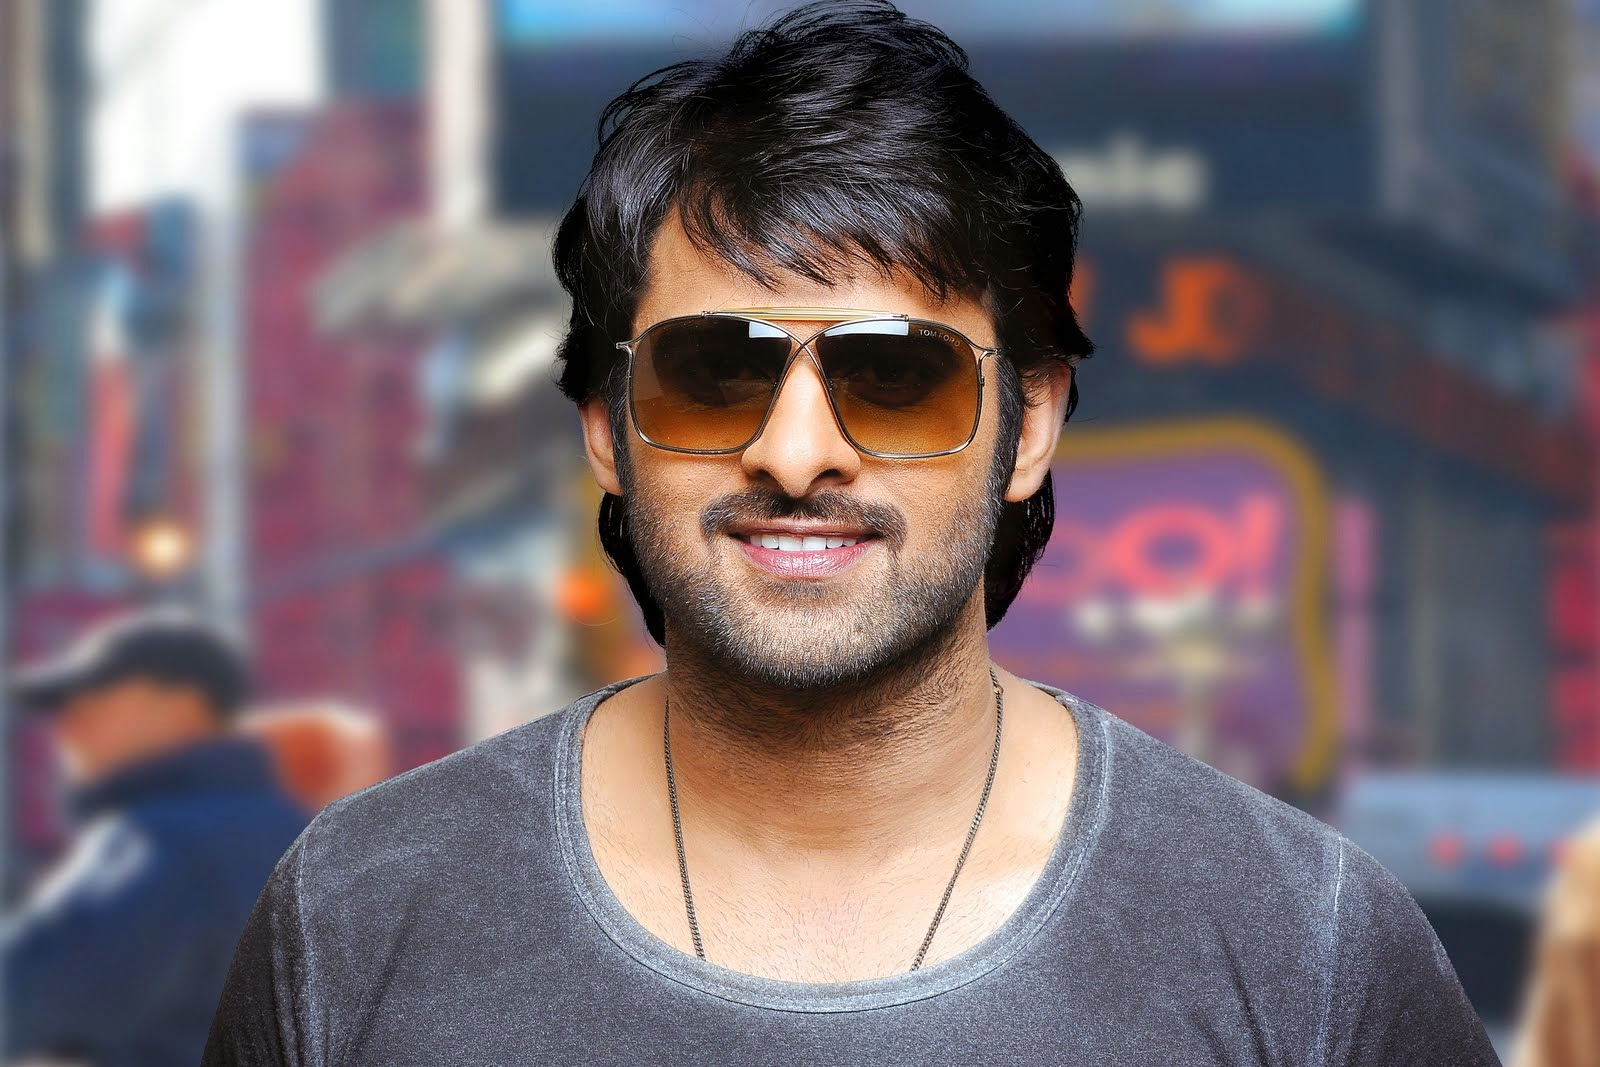 Prabhas to marry a Girl pursuing MBA in US